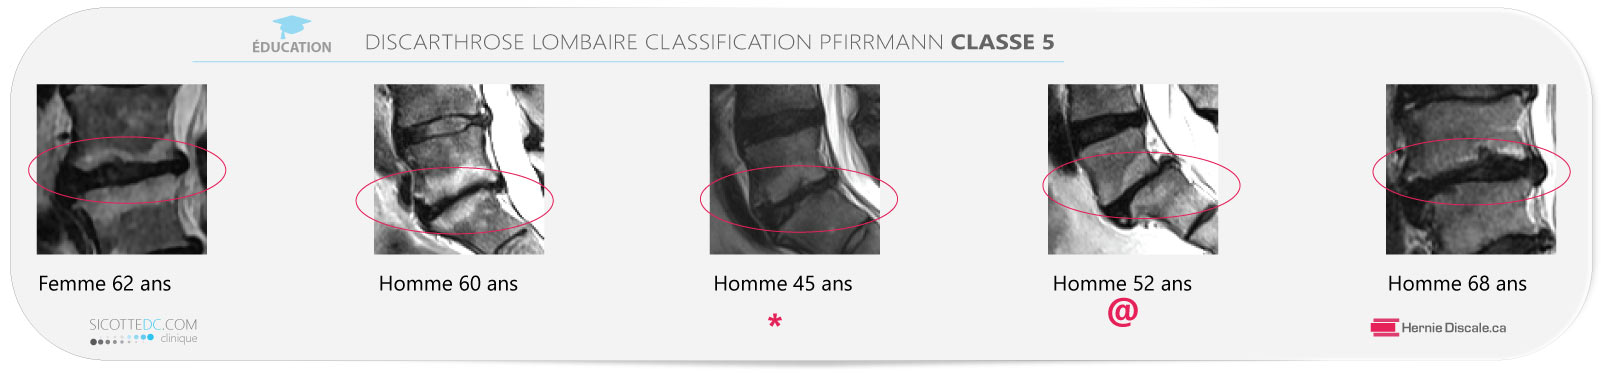 Example discarthrose lombaire classification Pfirrmann classe 5